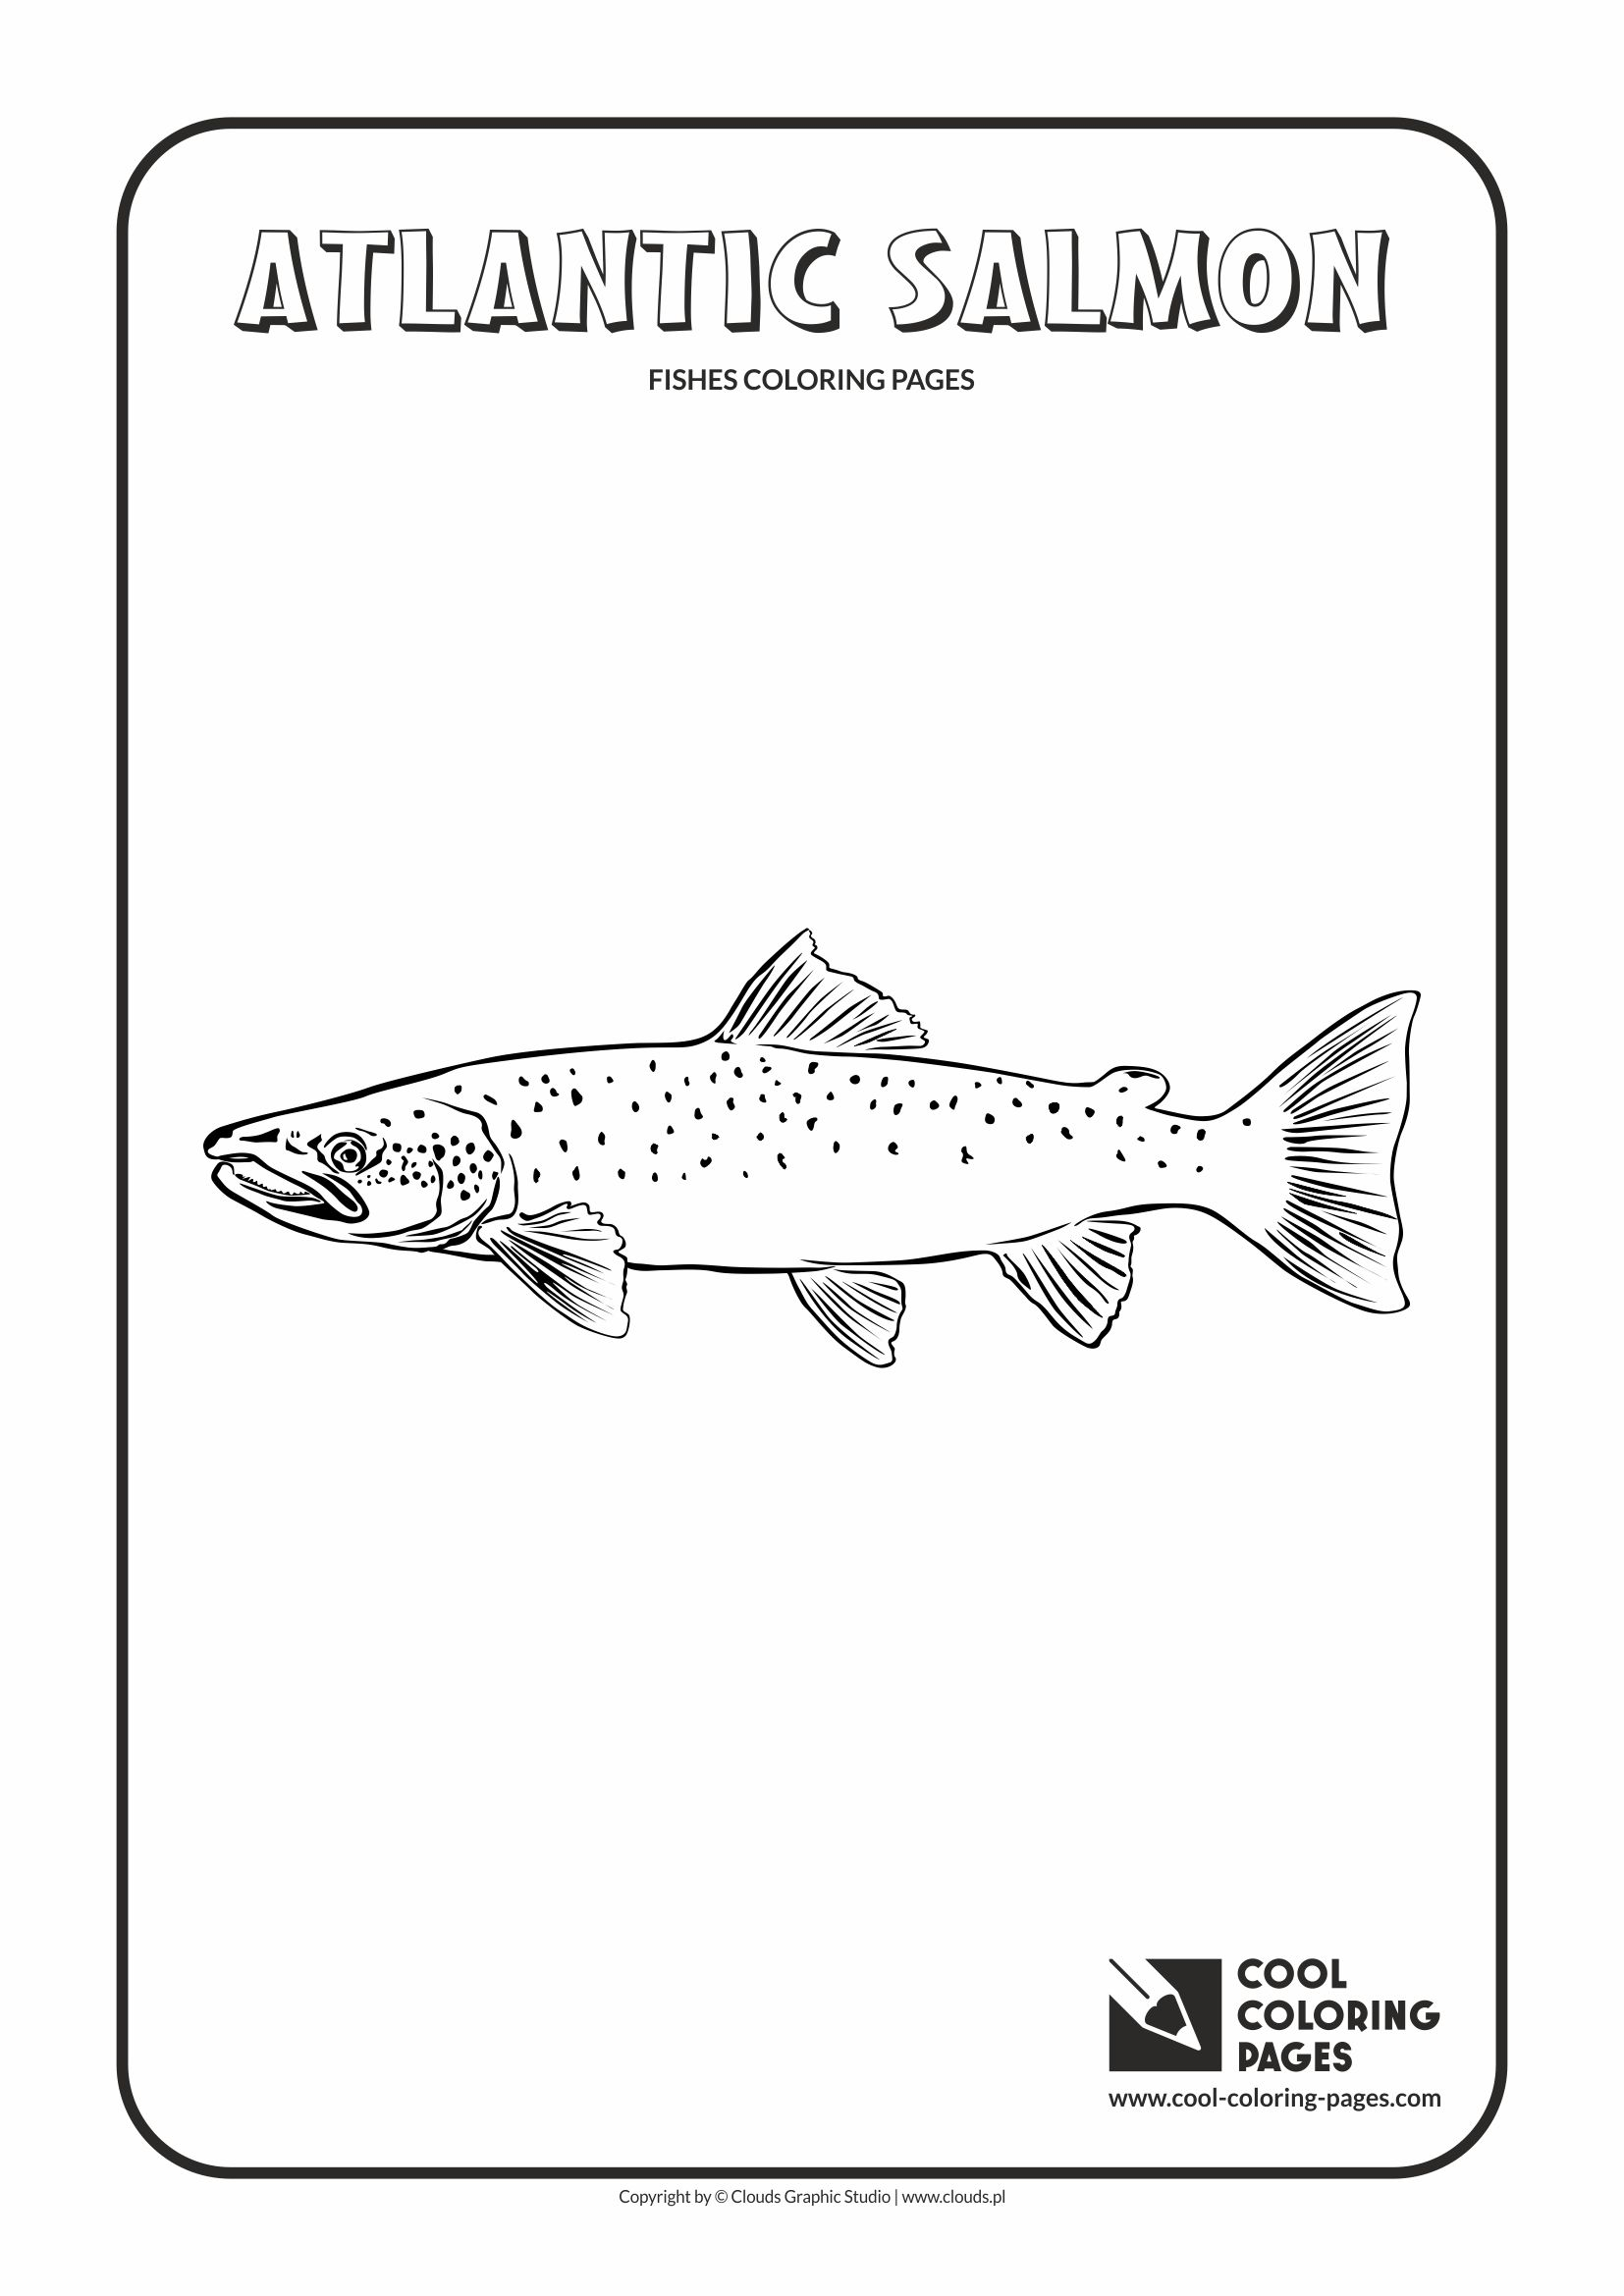 Cool Coloring Pages Animals Coloring Pages Cool Coloring